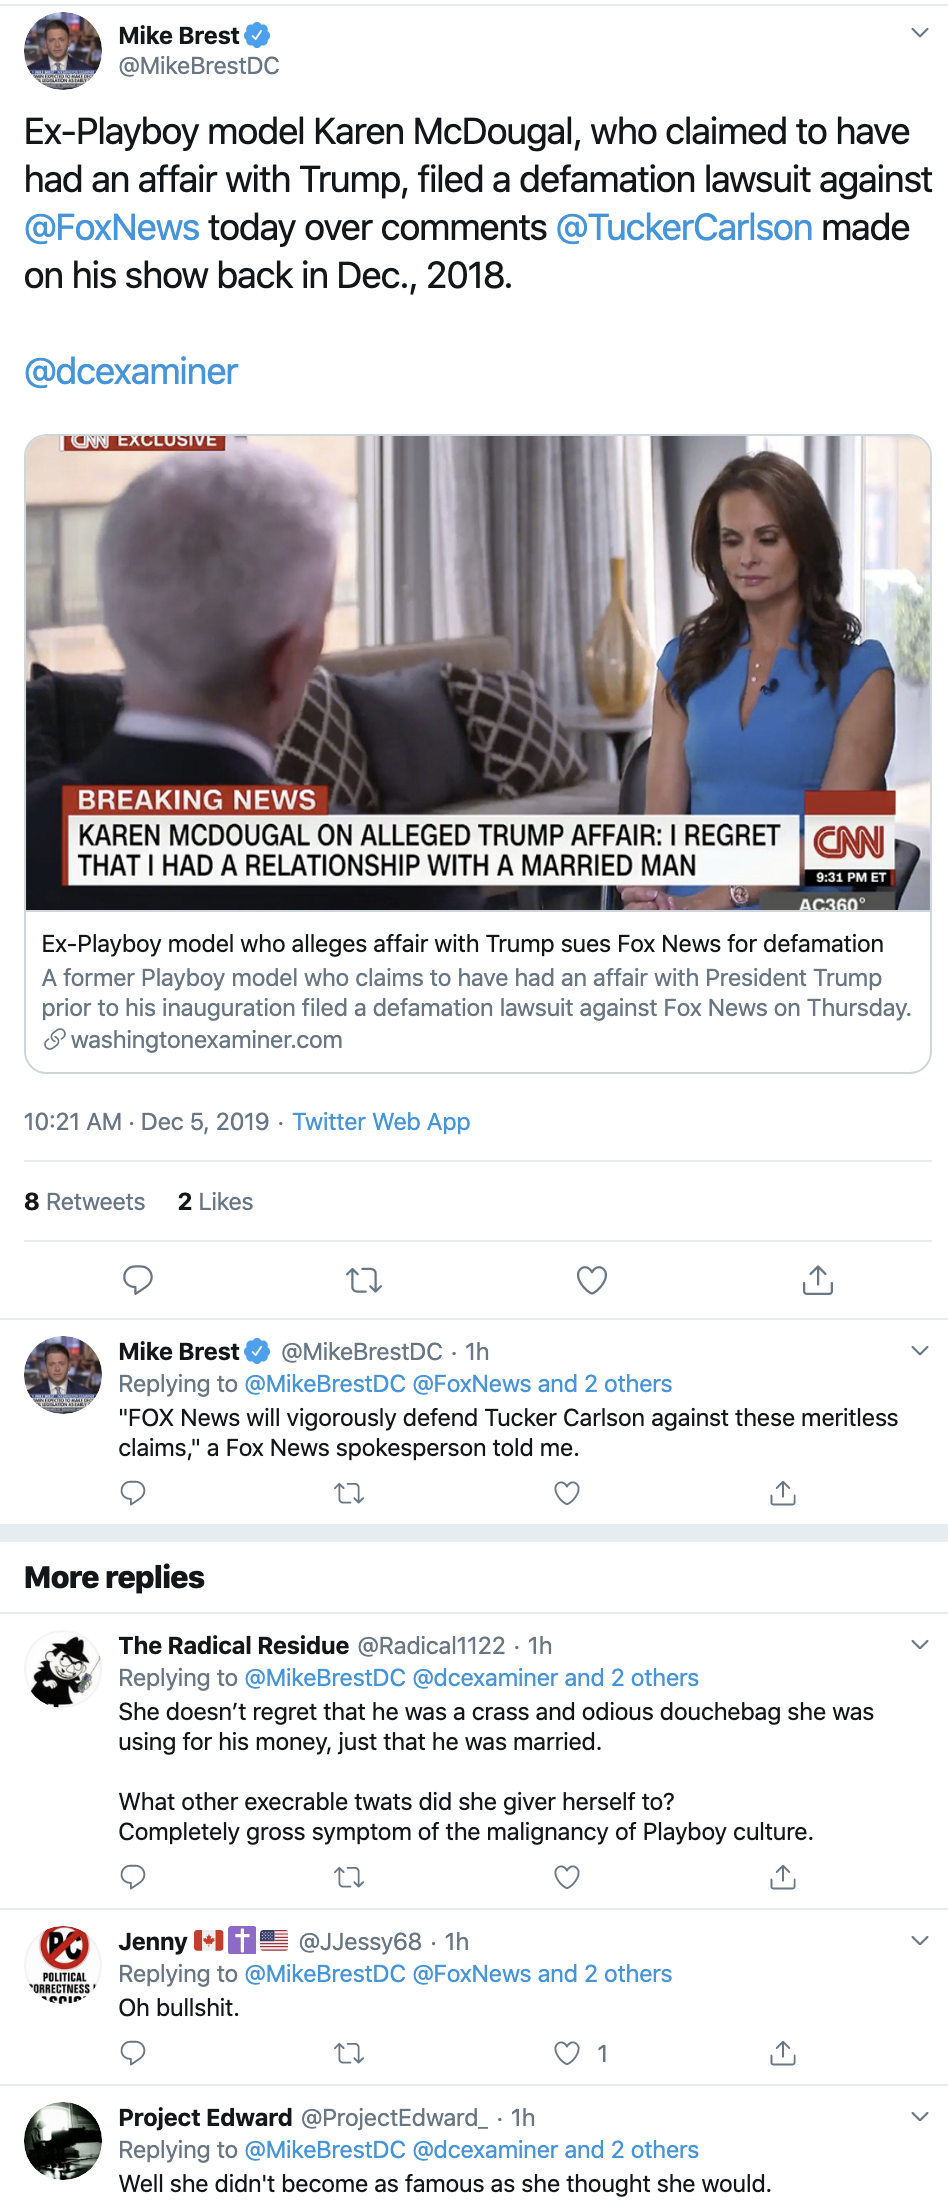 Screen-Shot-2019-12-05-at-11.52.49-AM Trump Accuser Karen McDougal Takes Tucker Carlson To Court Corruption Featured Feminism Me Too Top Stories